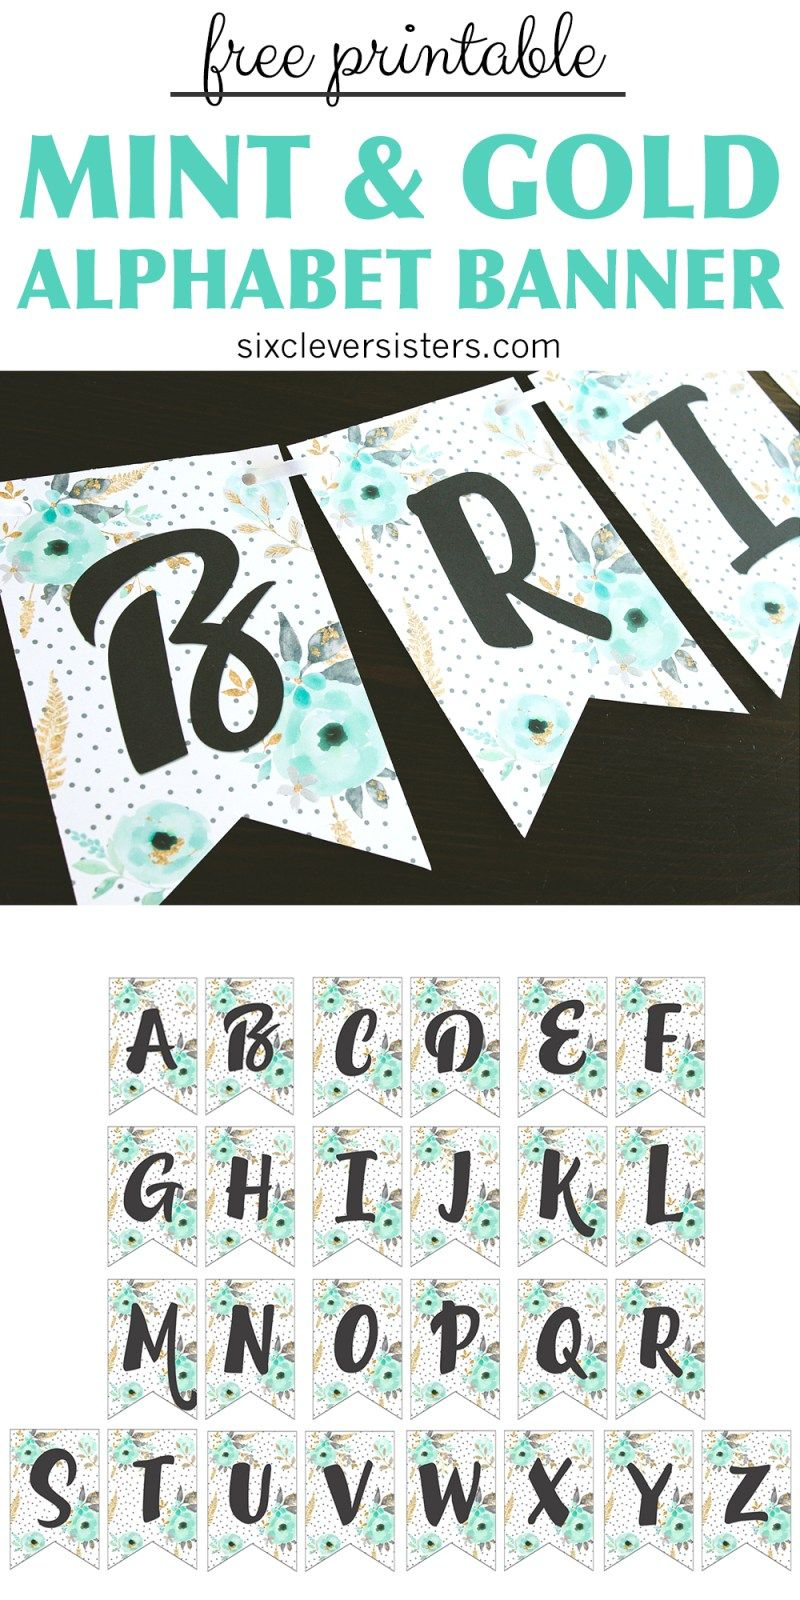 Free Printable Alphabet Banner Mint And Gold  Free Printable